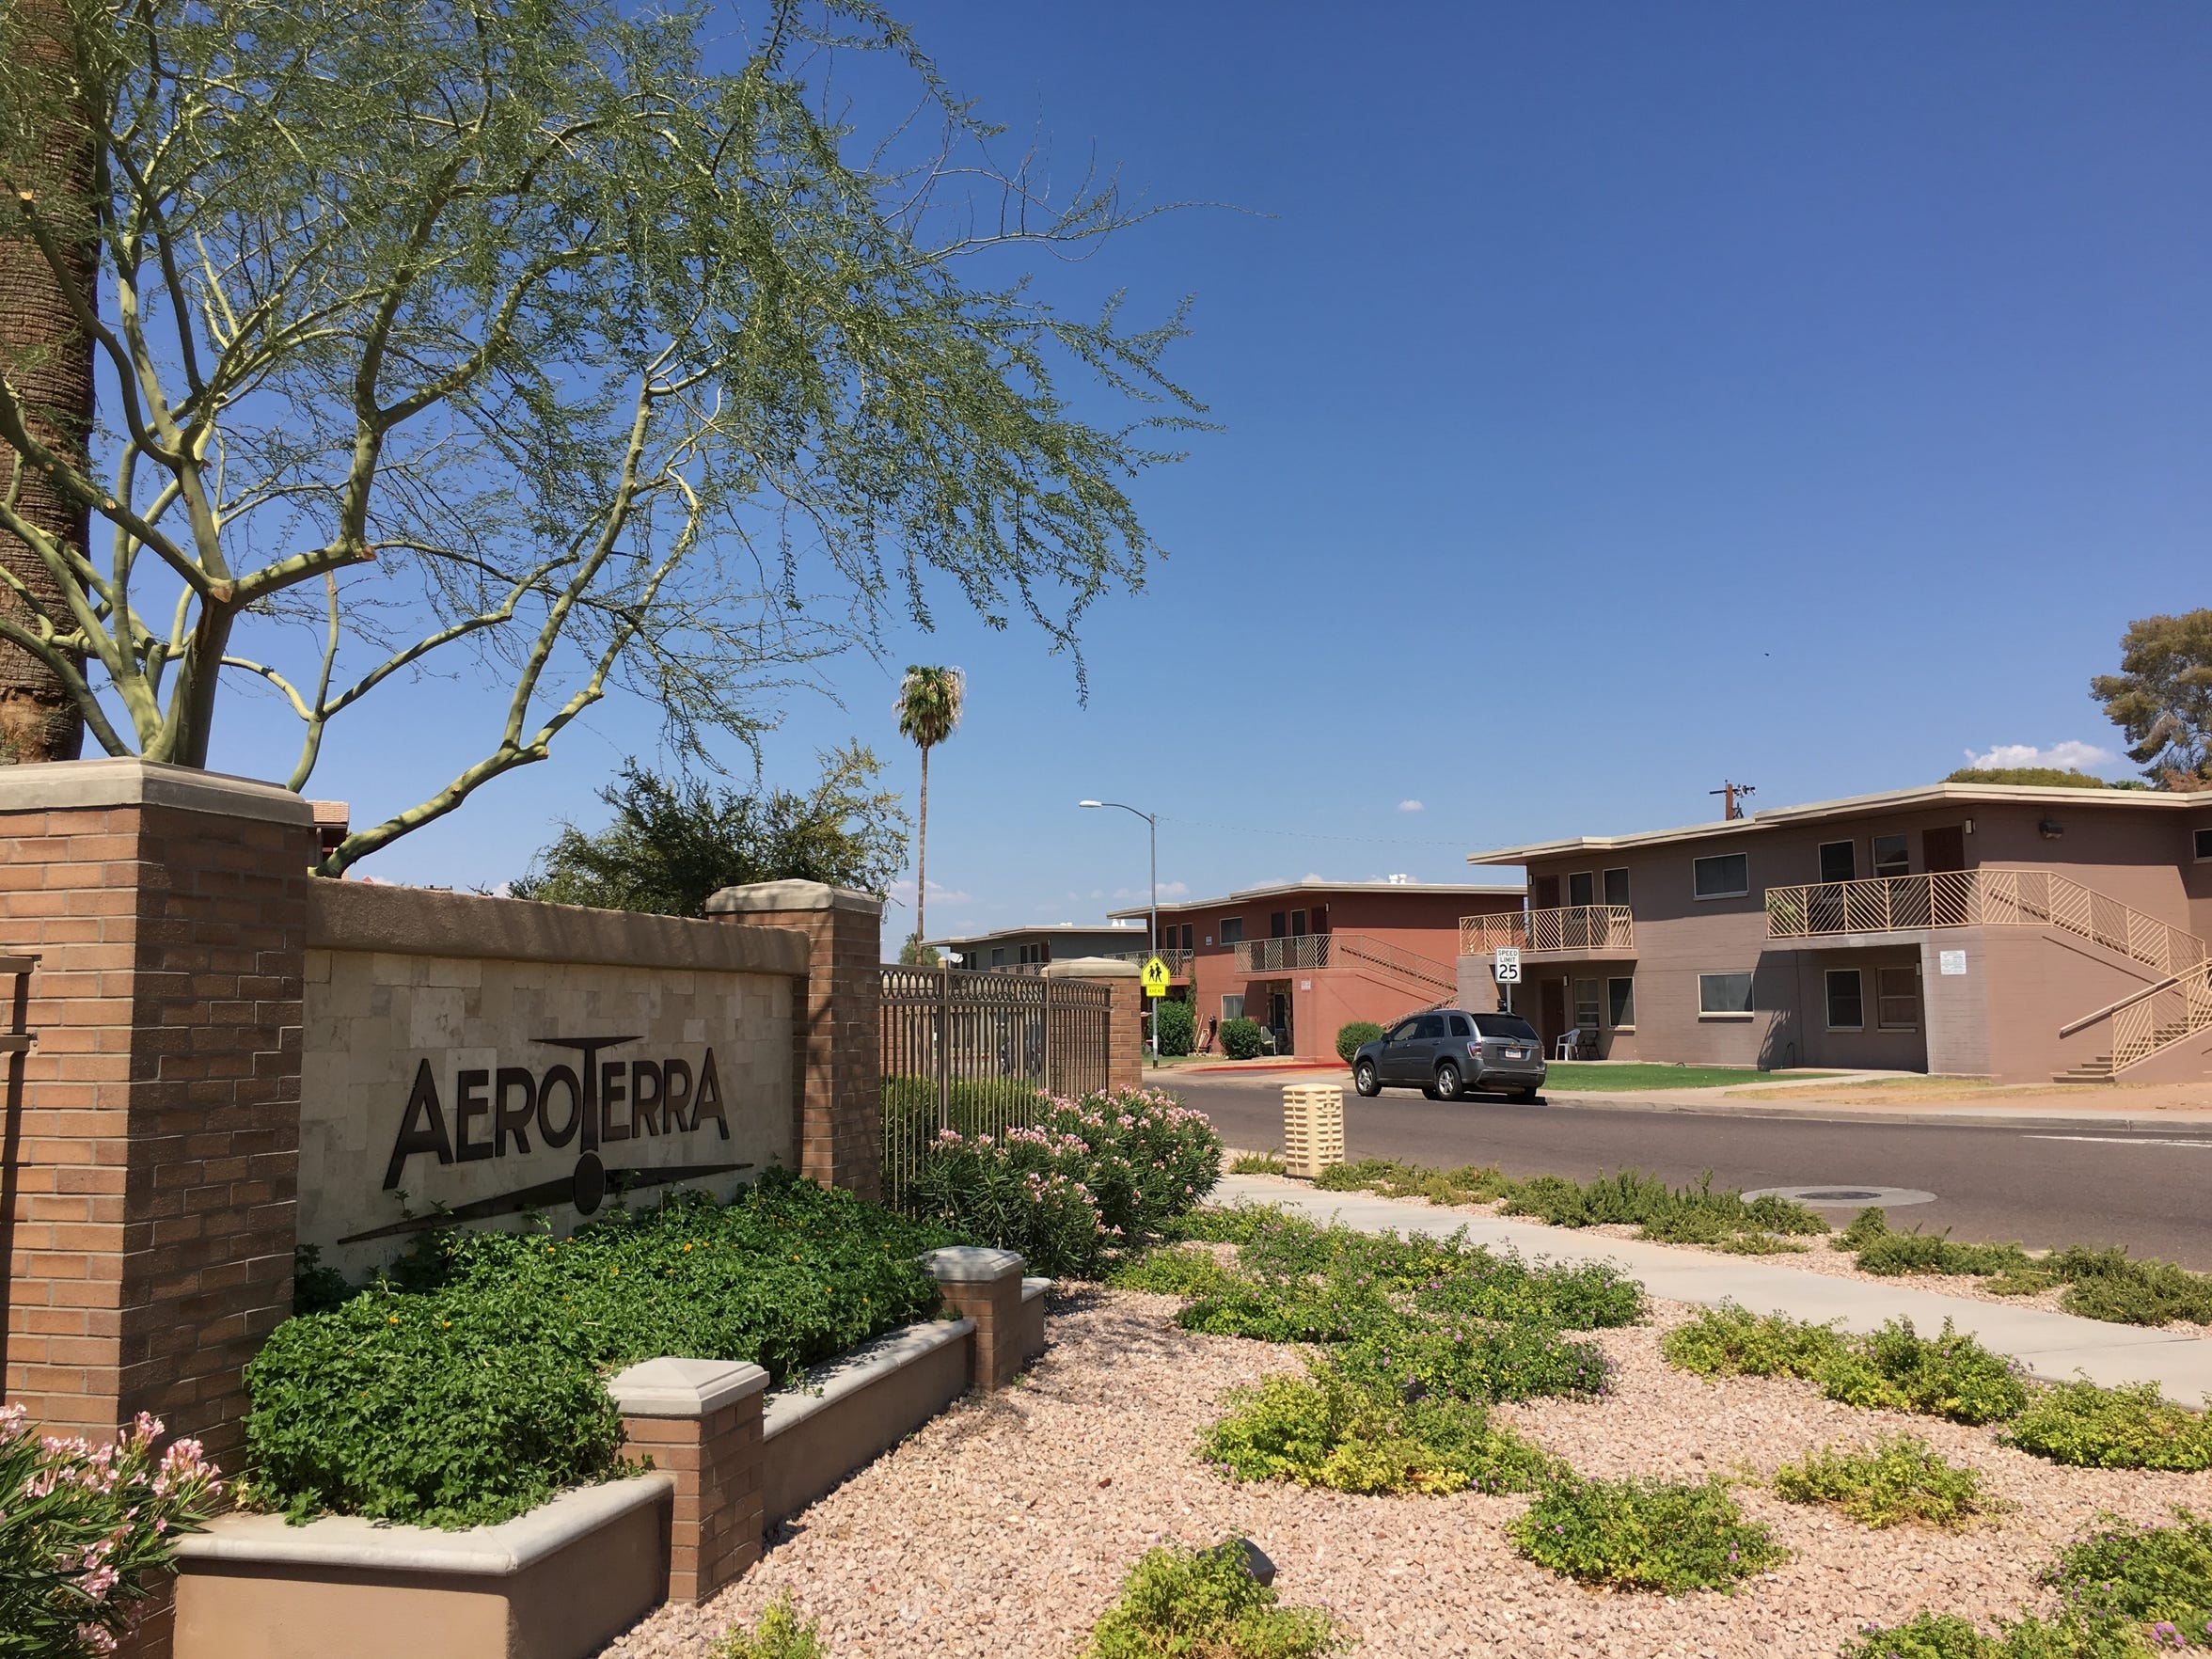 AeroTerra, built in the new style of public housing, sits just across the street from the 70-year-old projects of Edison-Eastlake.